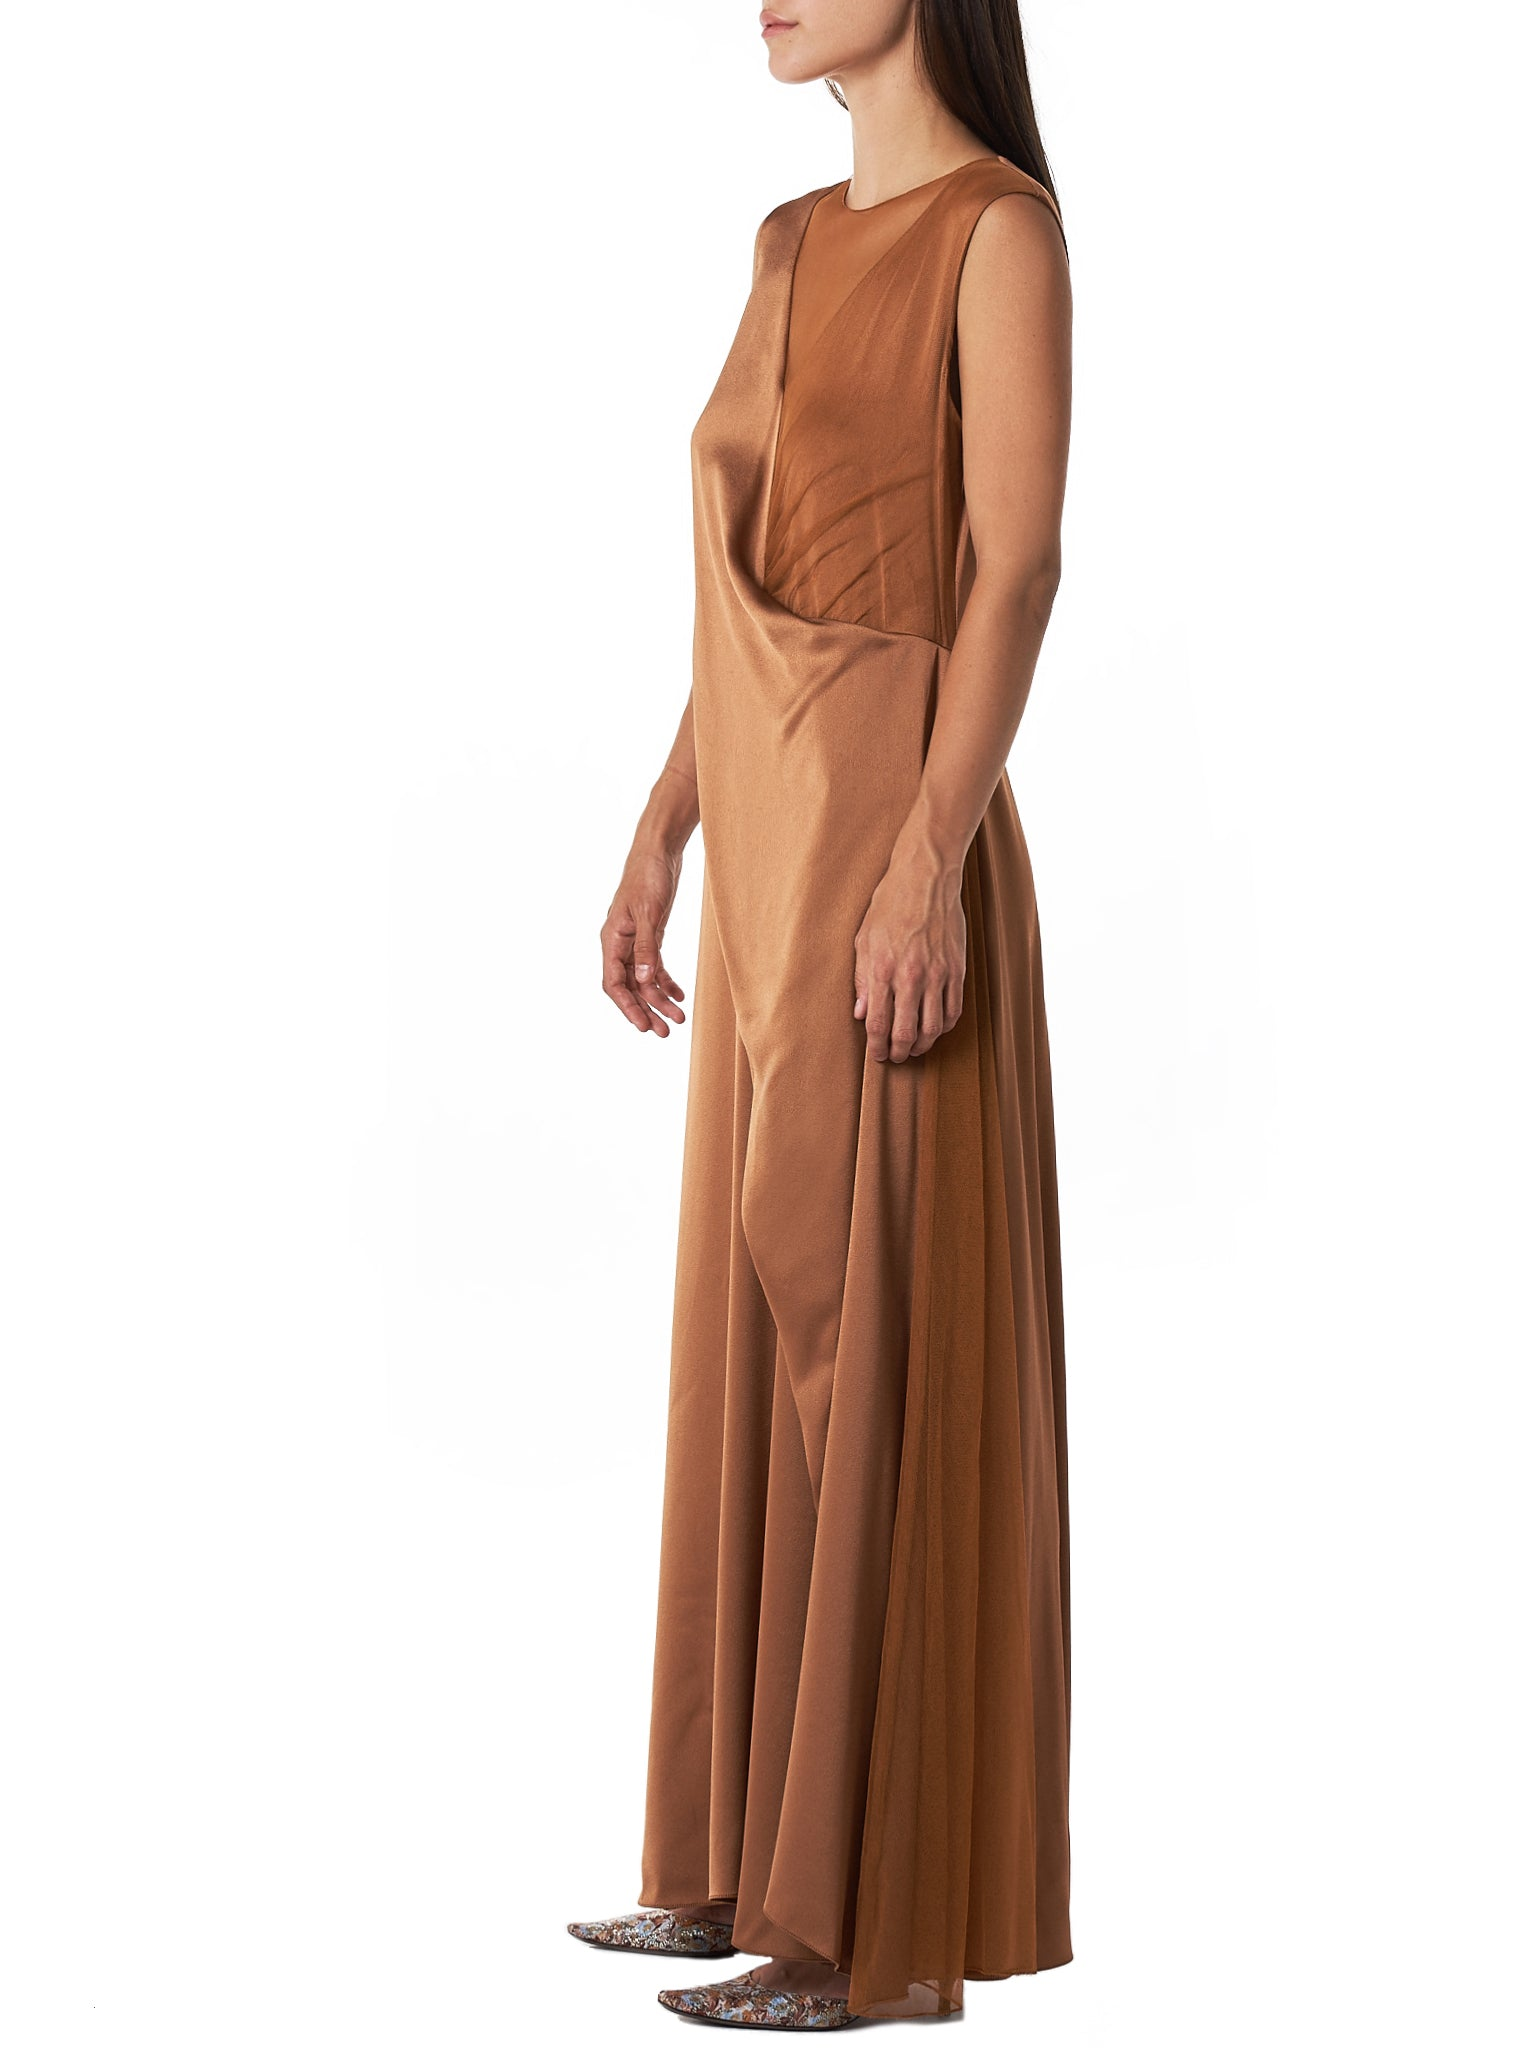 'Leona' V-neck Tulle Layered Dress (9BS5051-TOFFEE)